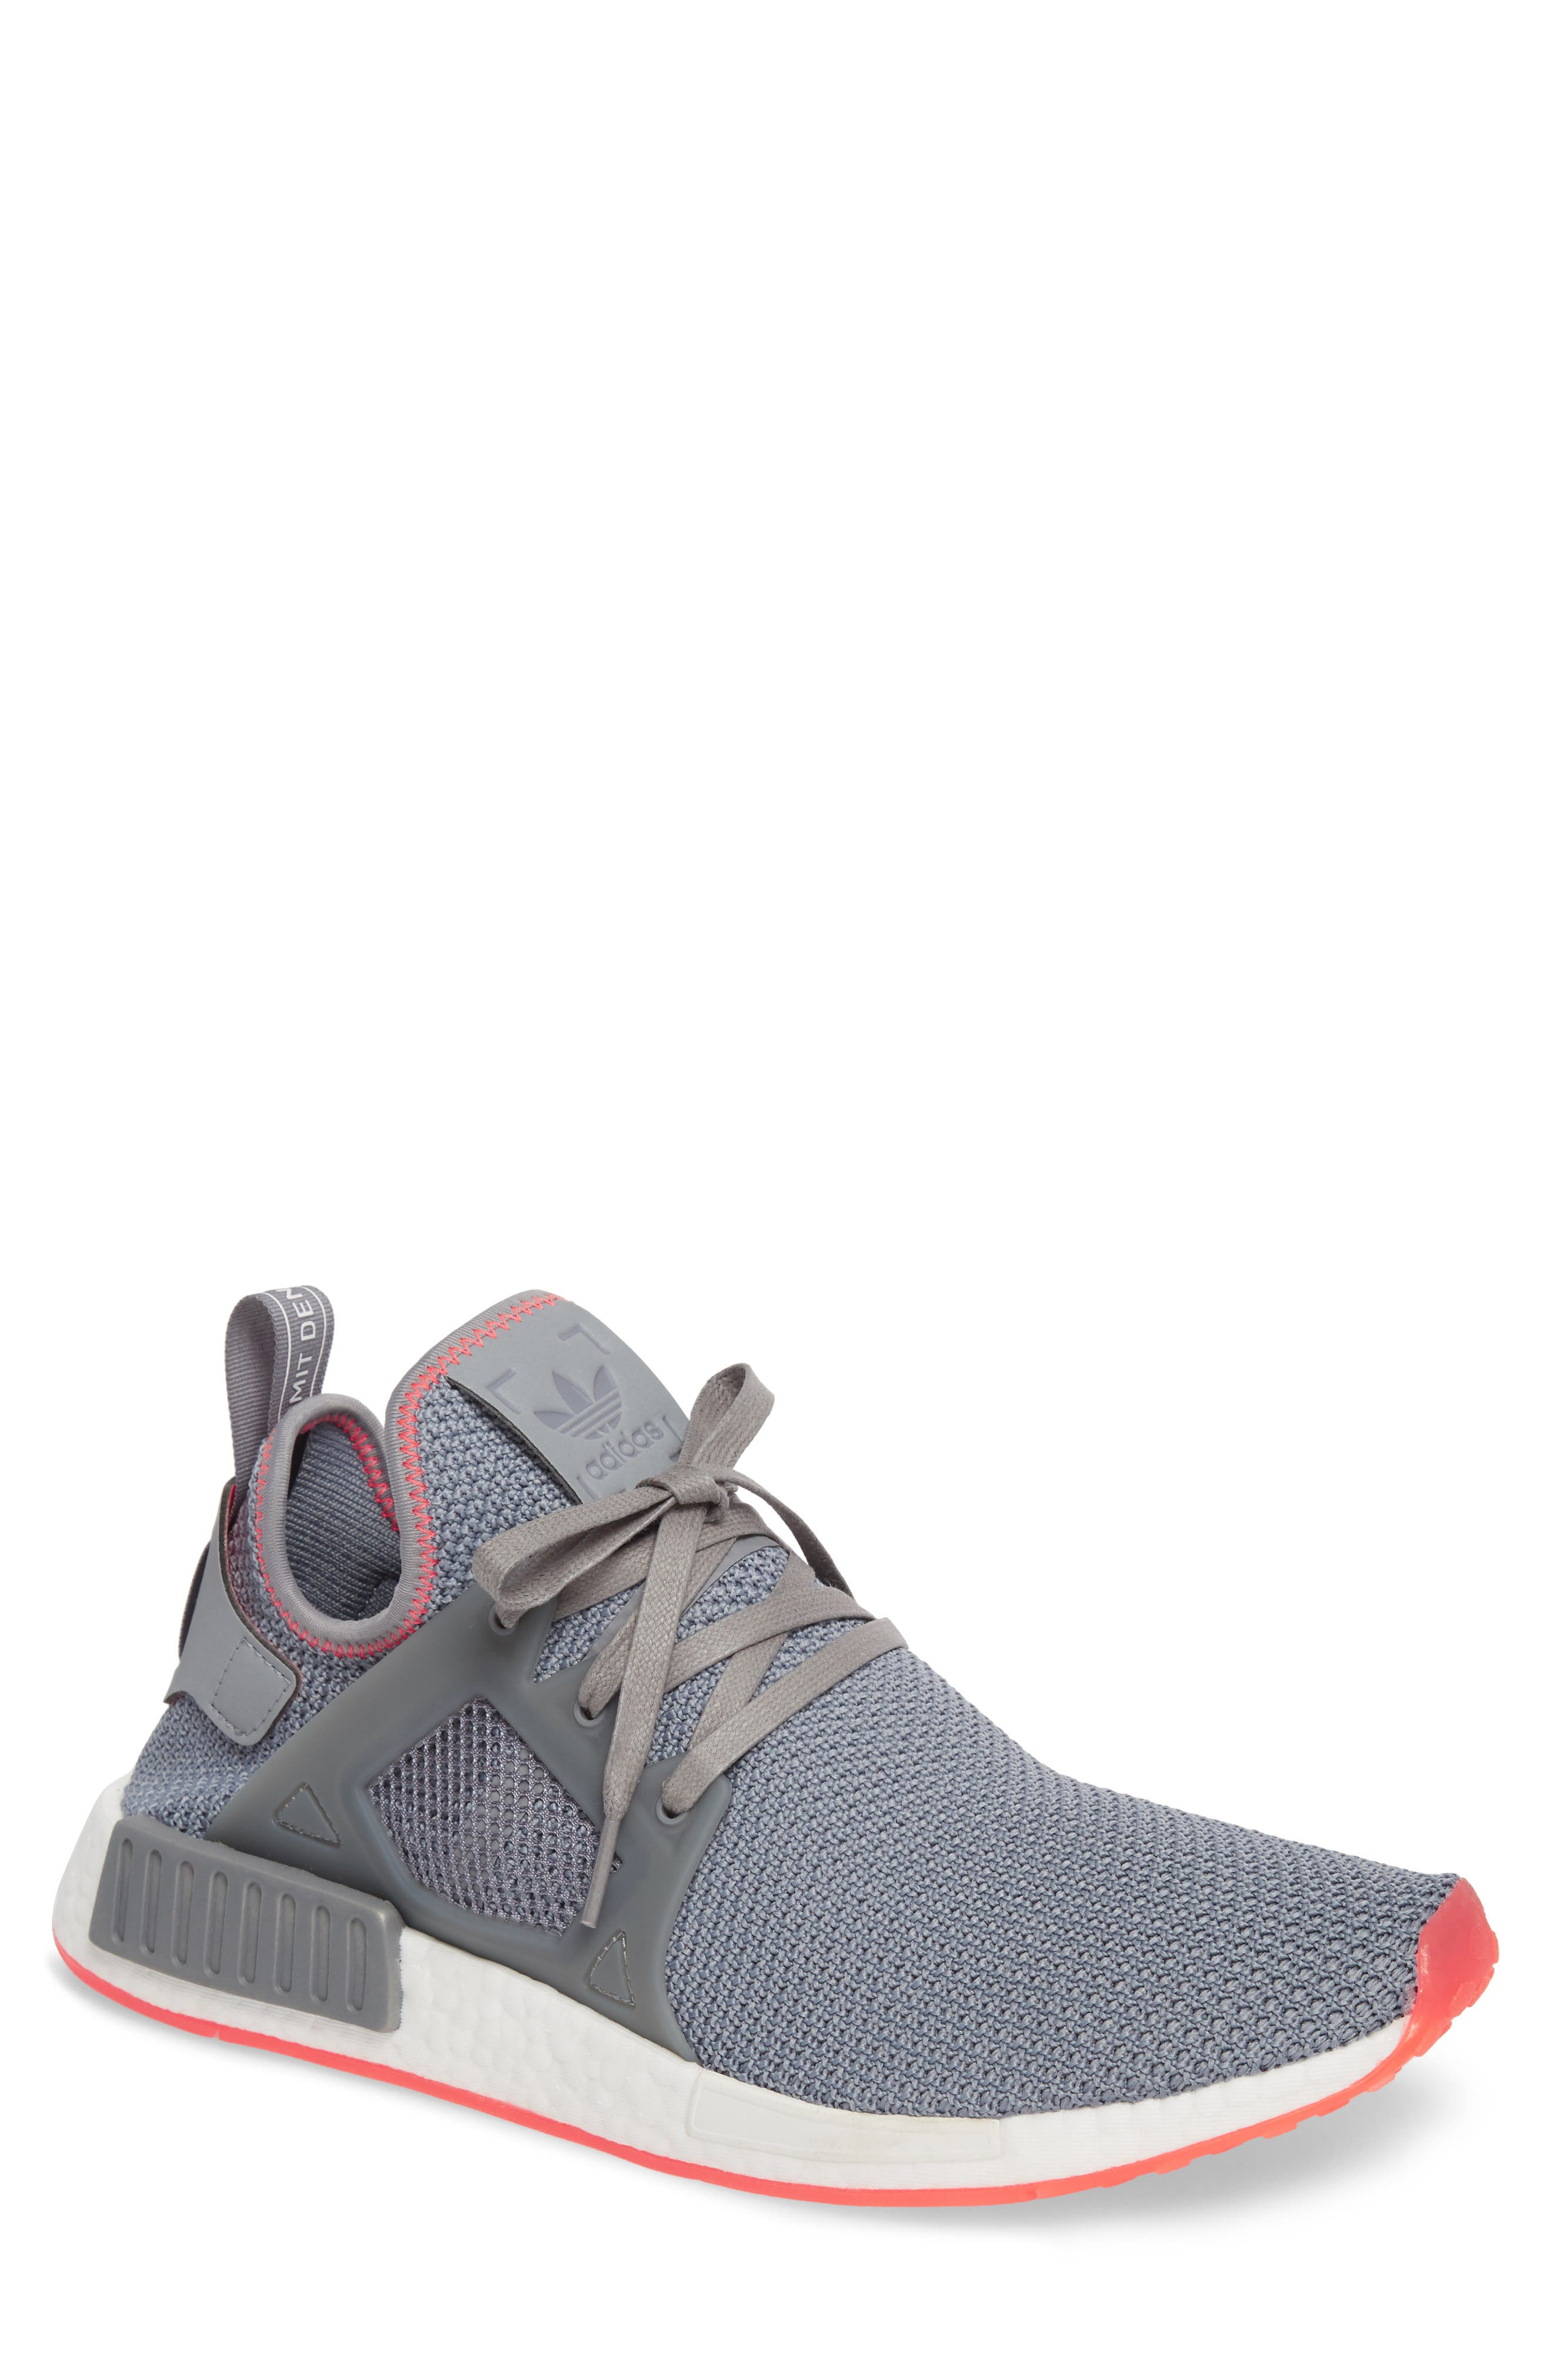 NMD_XR1 Sneaker,                         Main,                         color, Grey Heather/ Red